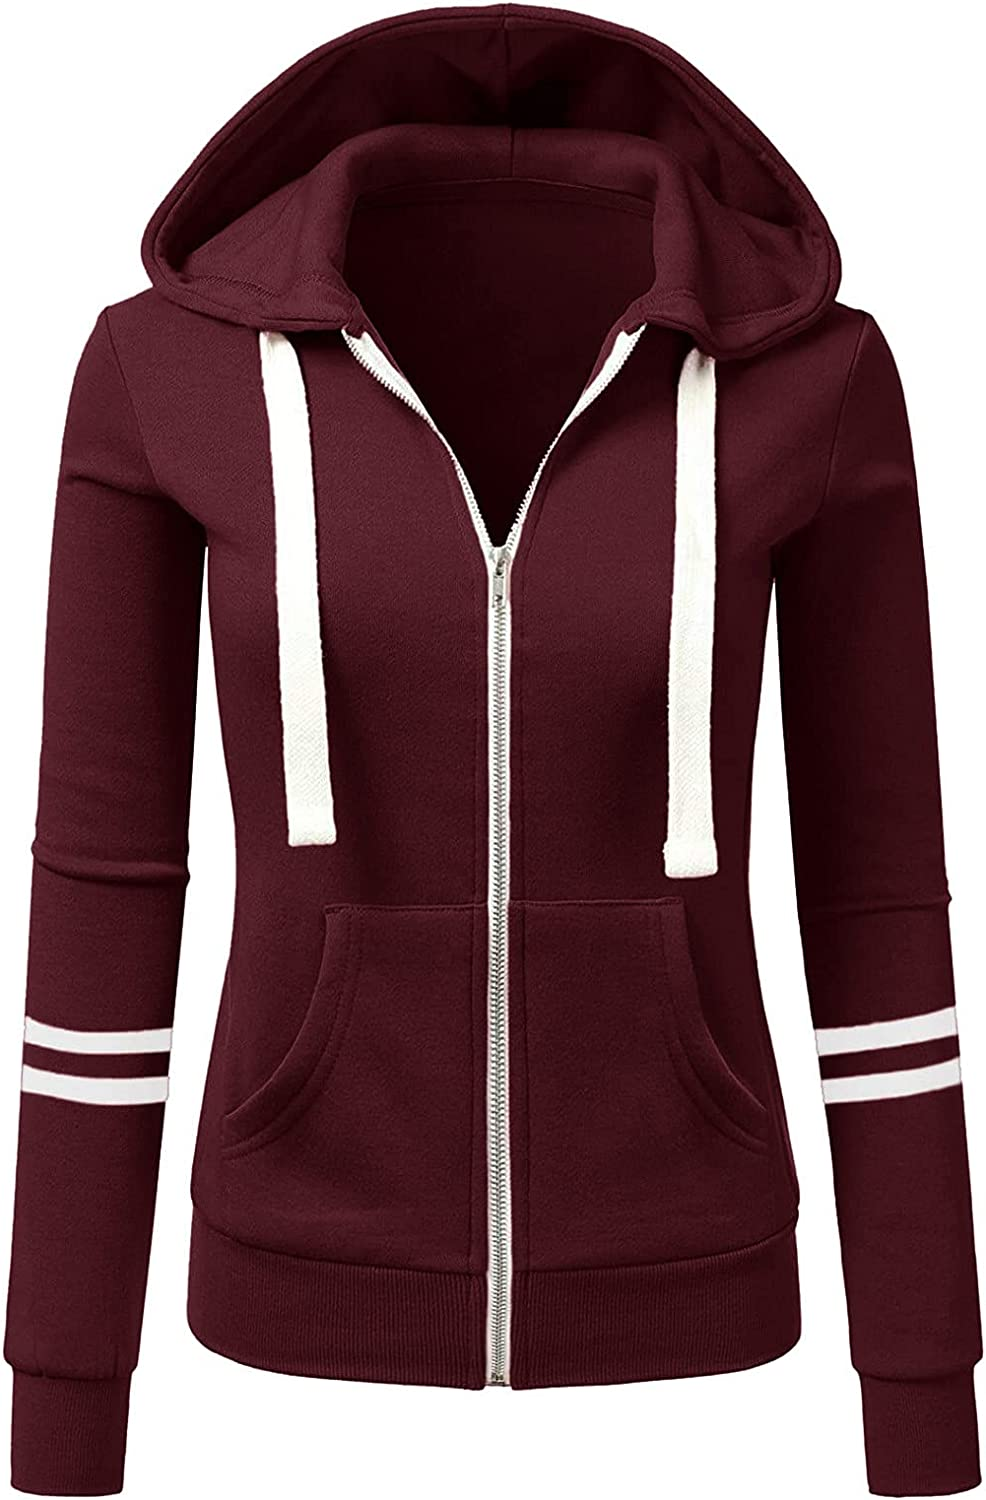 Autumn and Winter Women's Quantity limited Popular popular Sweater Hoodies Jac Solid Sports Color